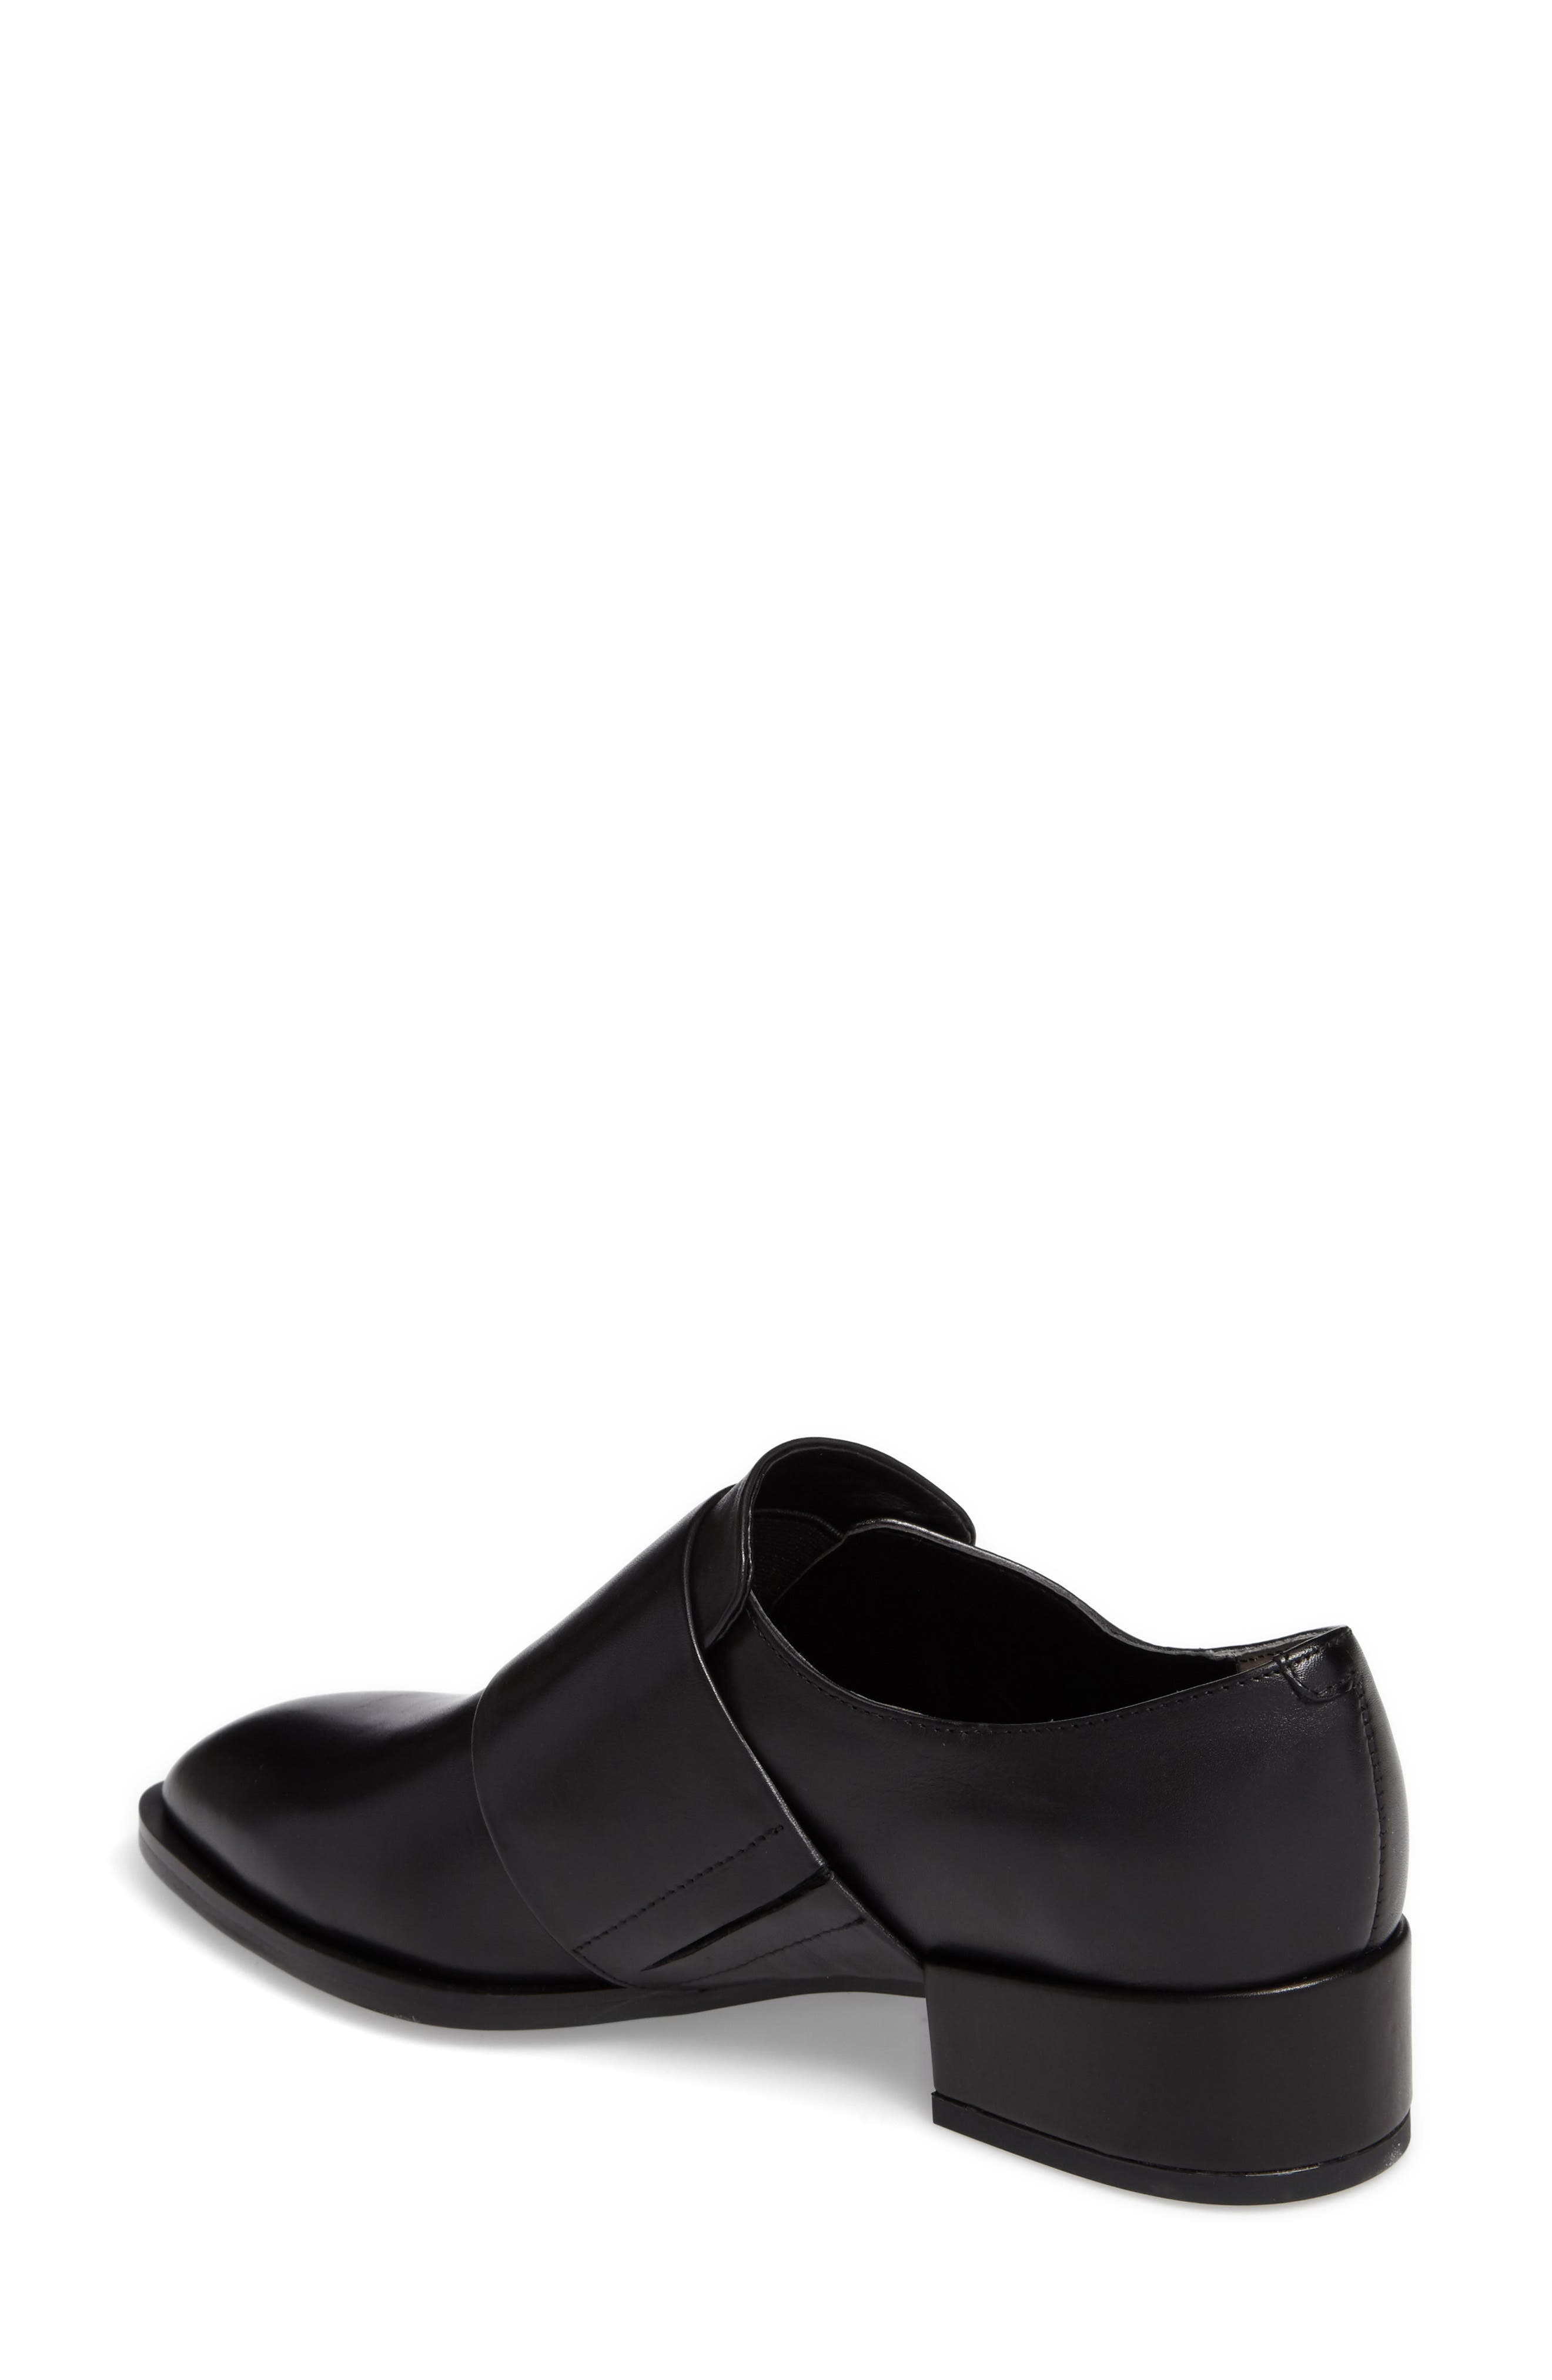 Dilla Loafer,                             Alternate thumbnail 2, color,                             BLACK CALAIS LEATHER